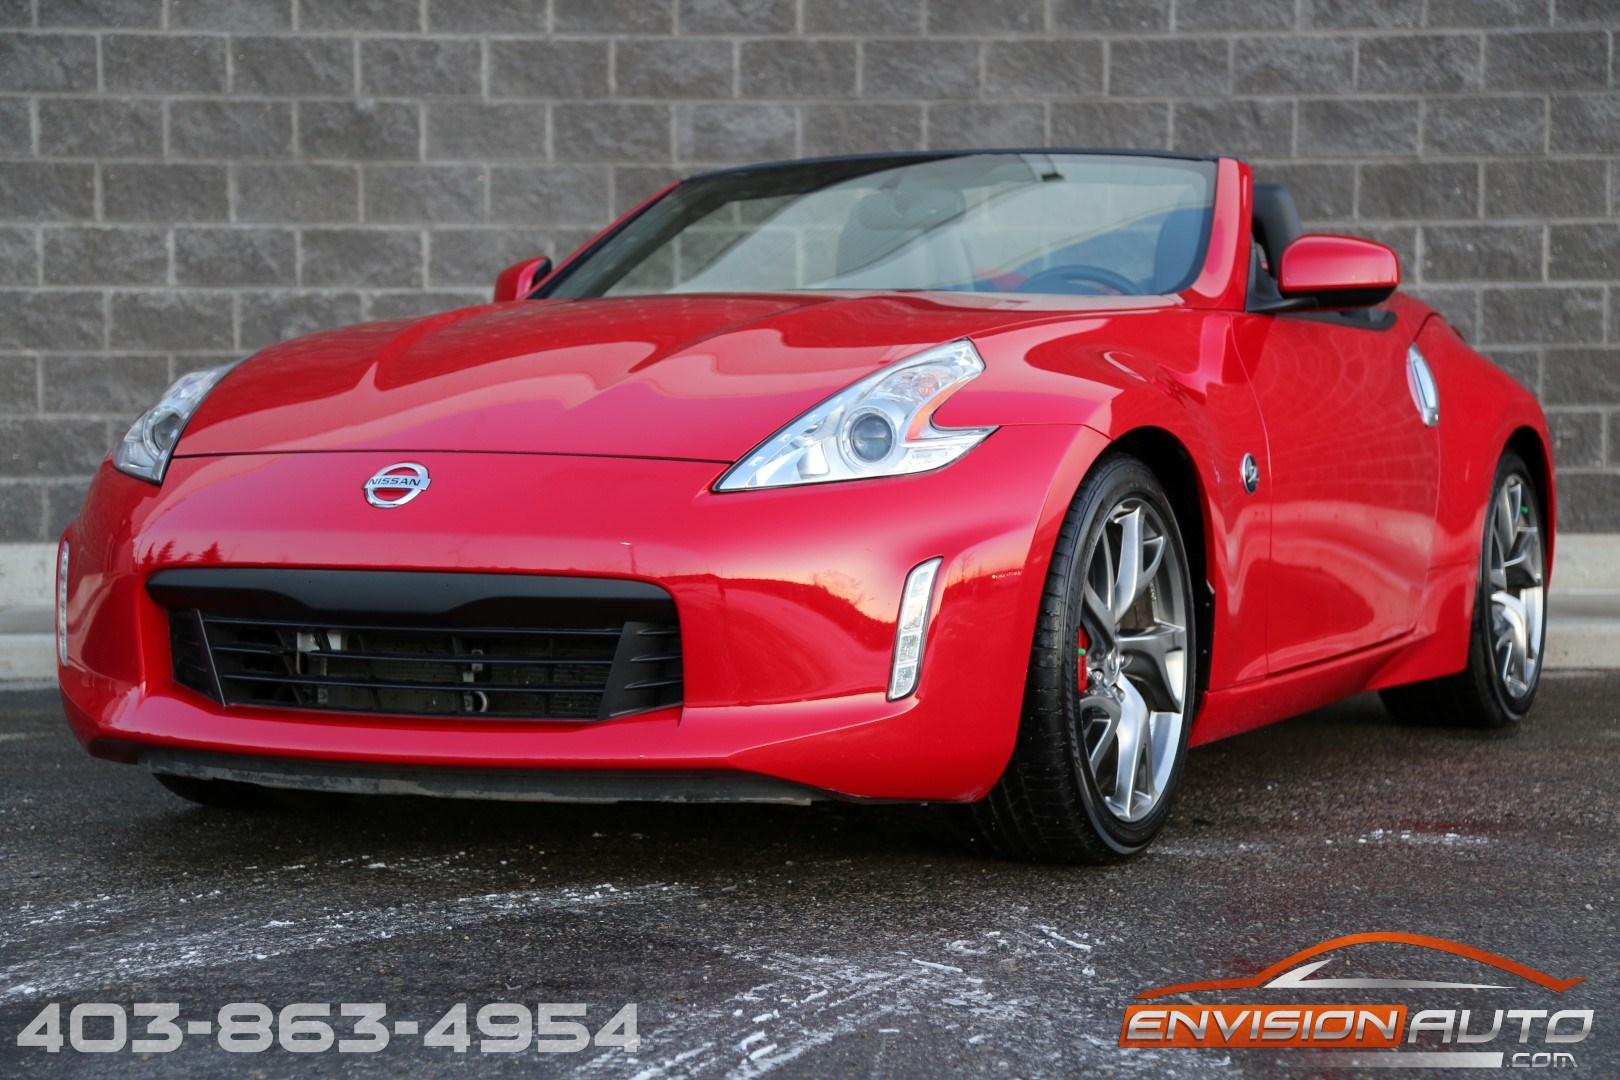 2017 nissan 370z roadster sport touring pkg only 10 400 kms envision auto calgary. Black Bedroom Furniture Sets. Home Design Ideas